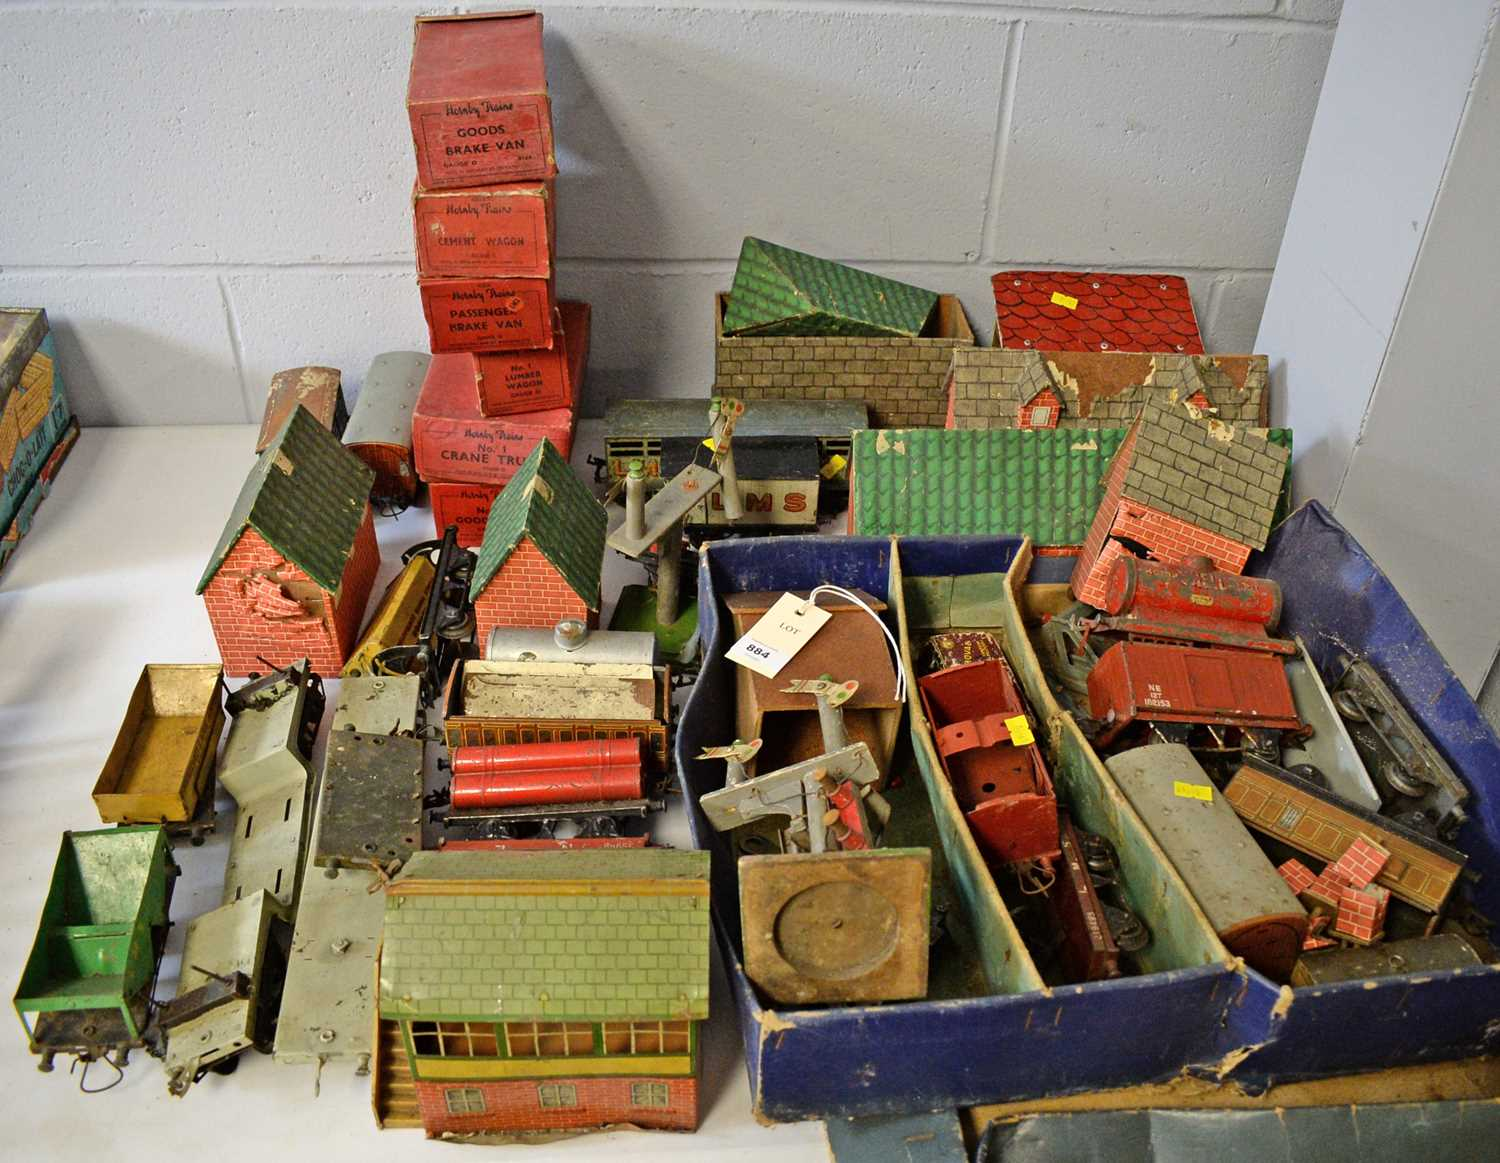 Qty 0-gauge model railway, and other accessories.